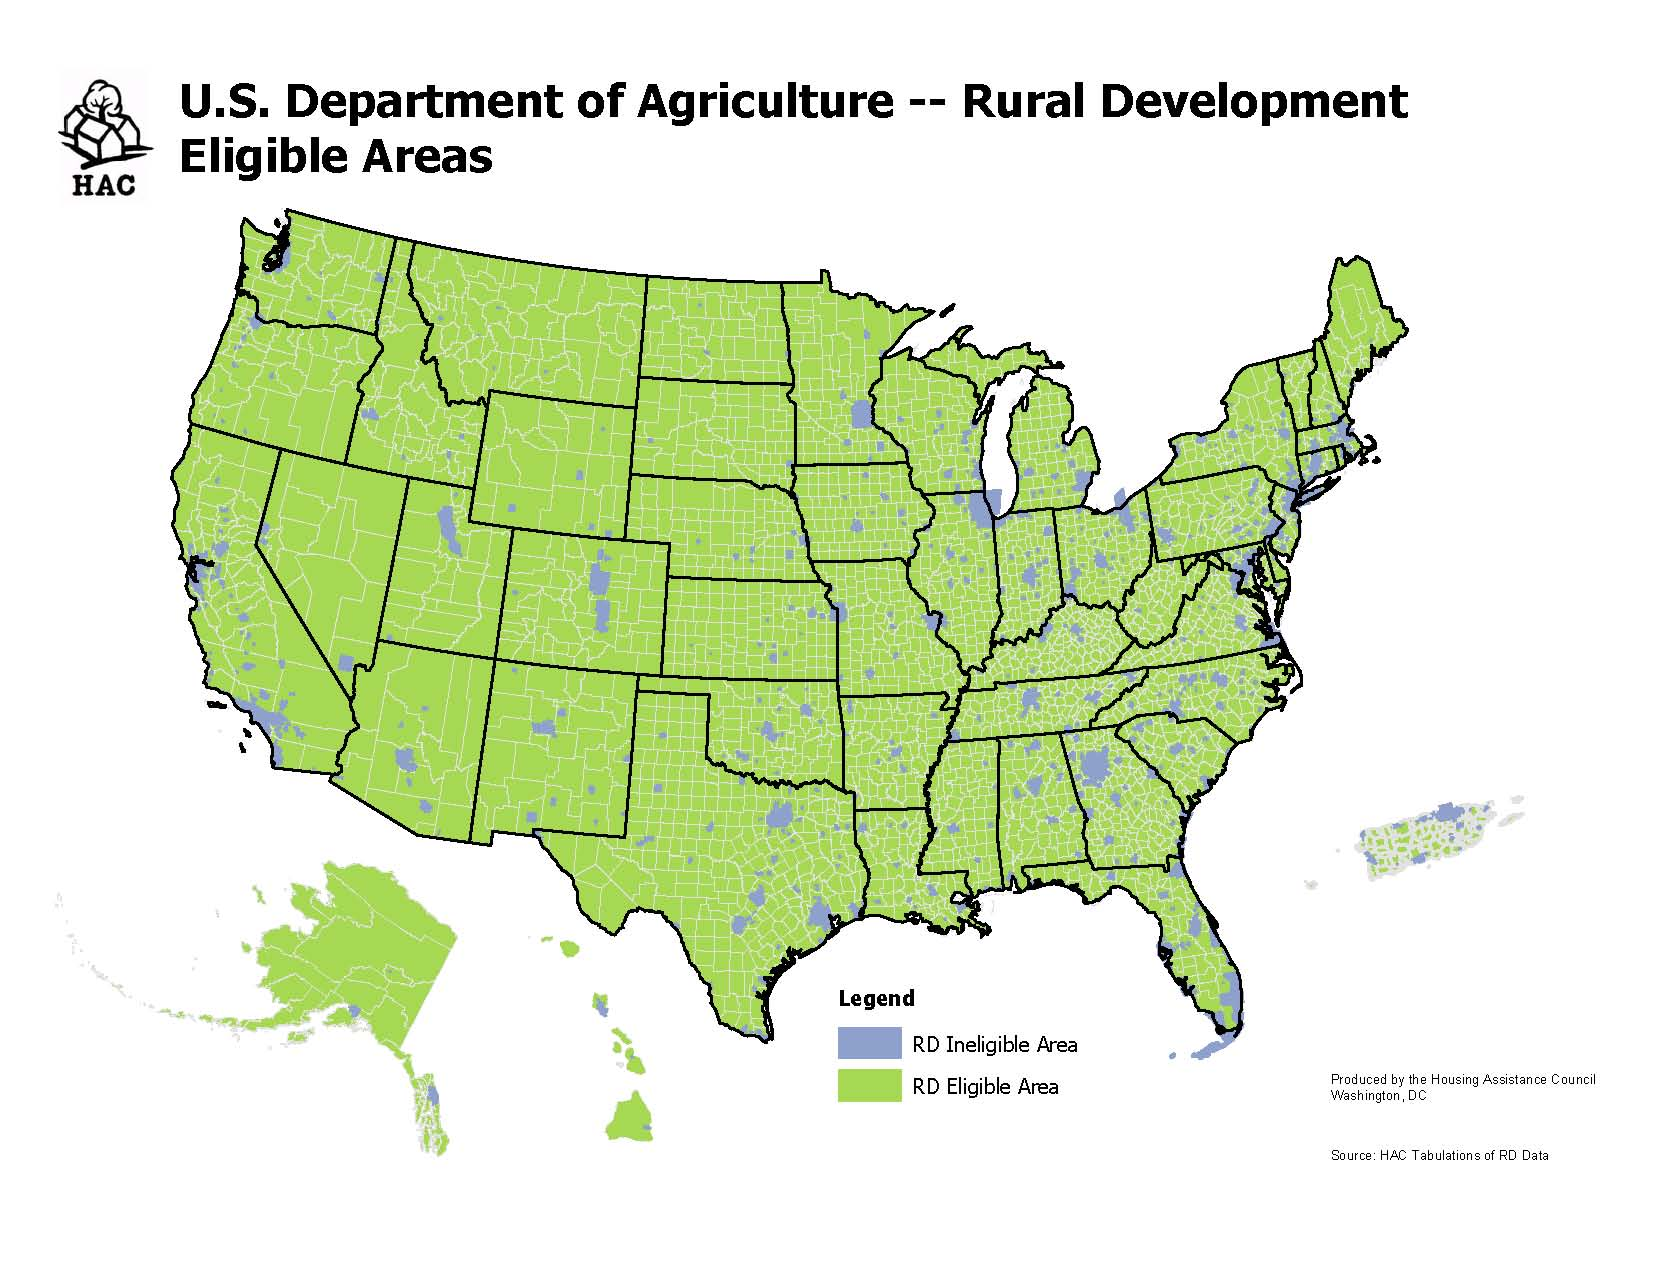 Click on the map for a larger view.